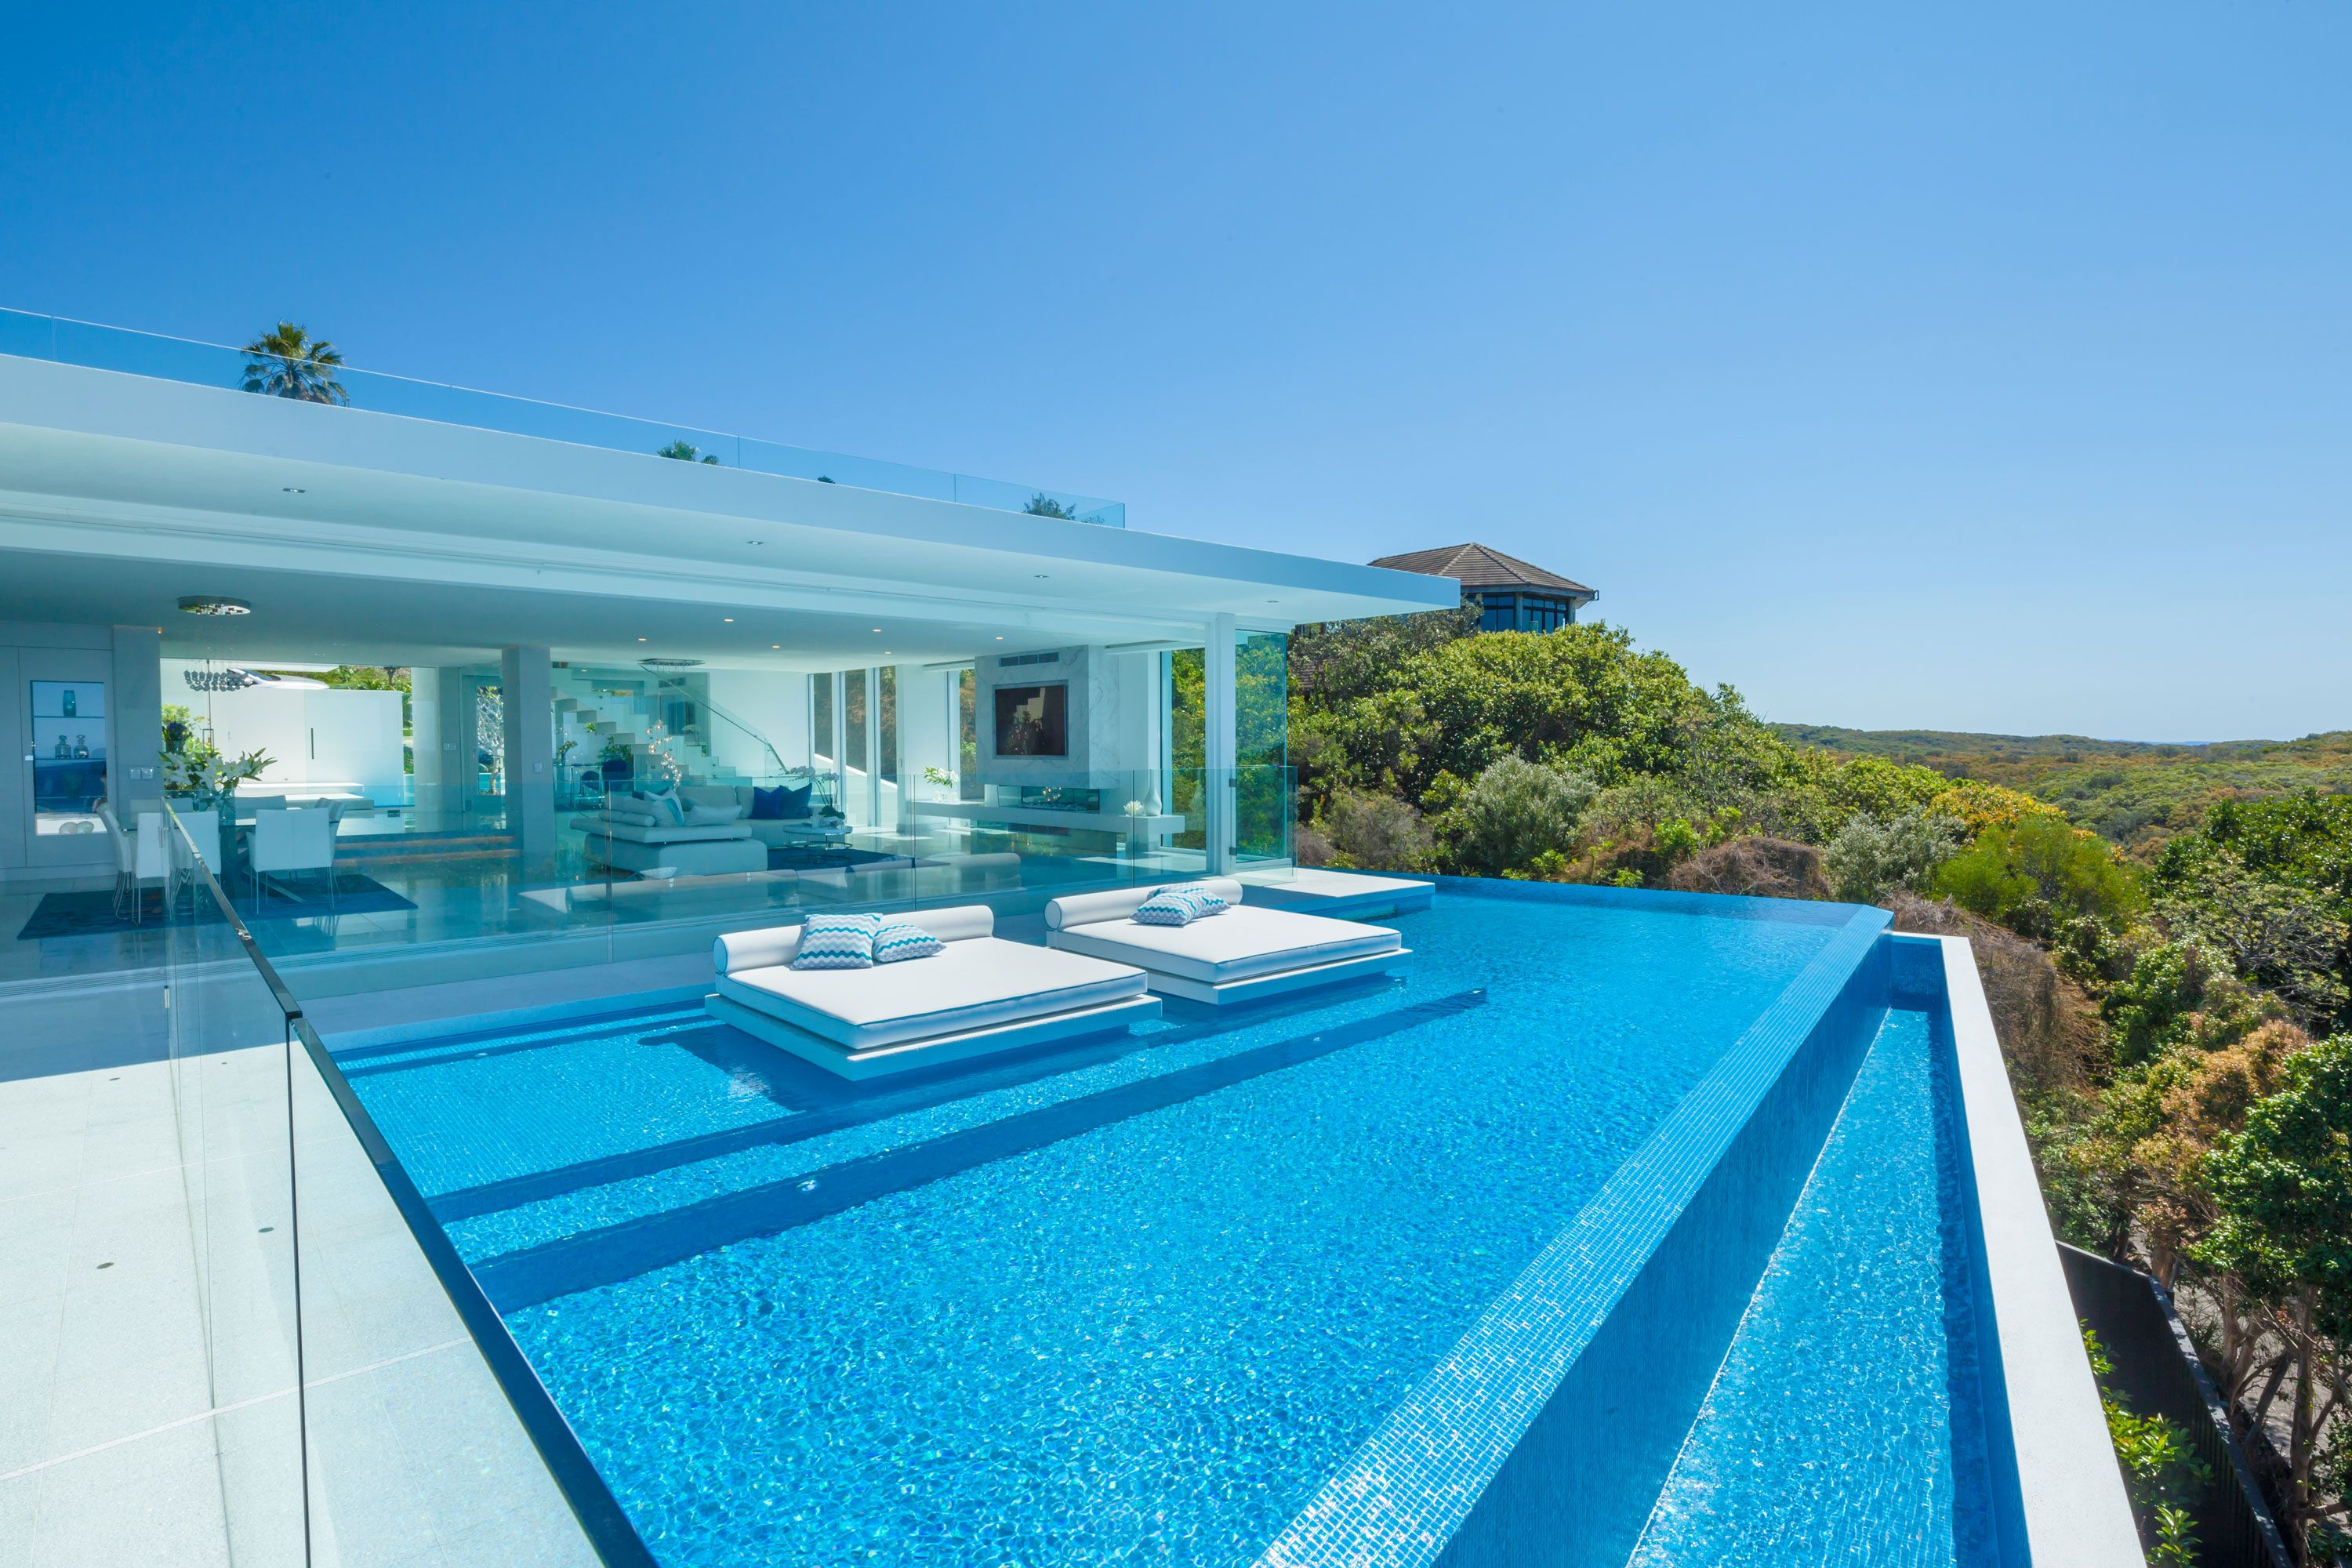 North sunshine house pools - Piscinas minimalistas ...